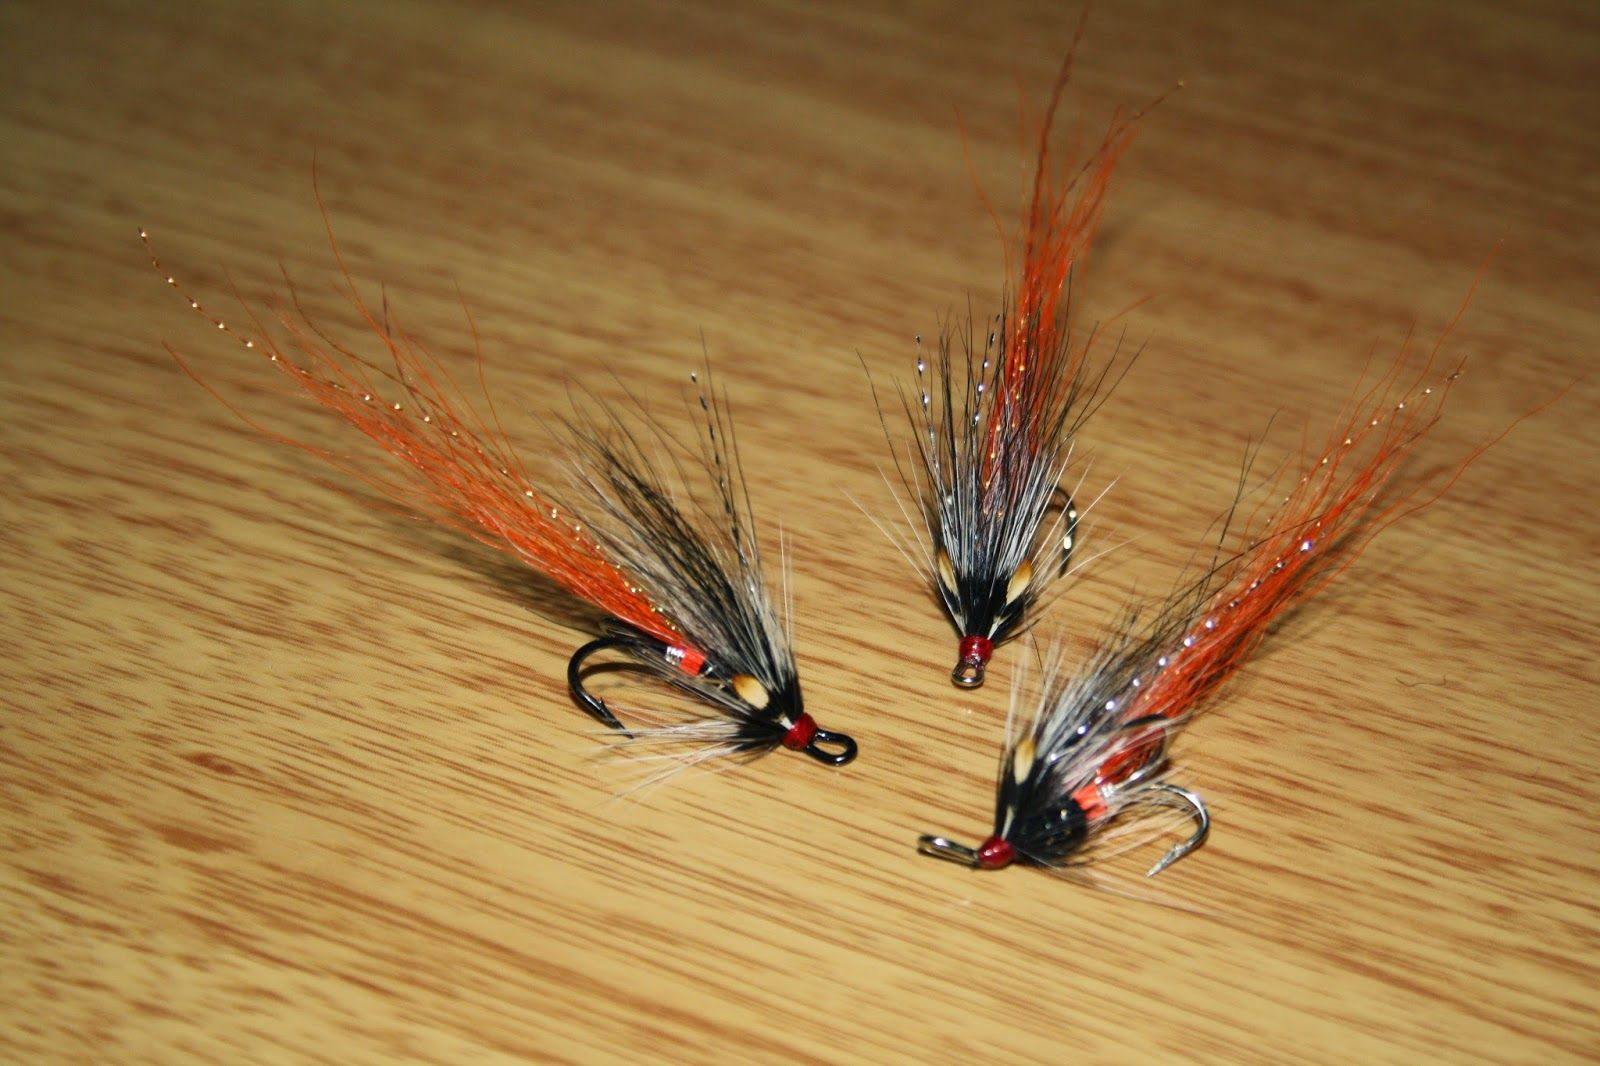 Dee don salmon fishing how to tie a ks shrimp step by